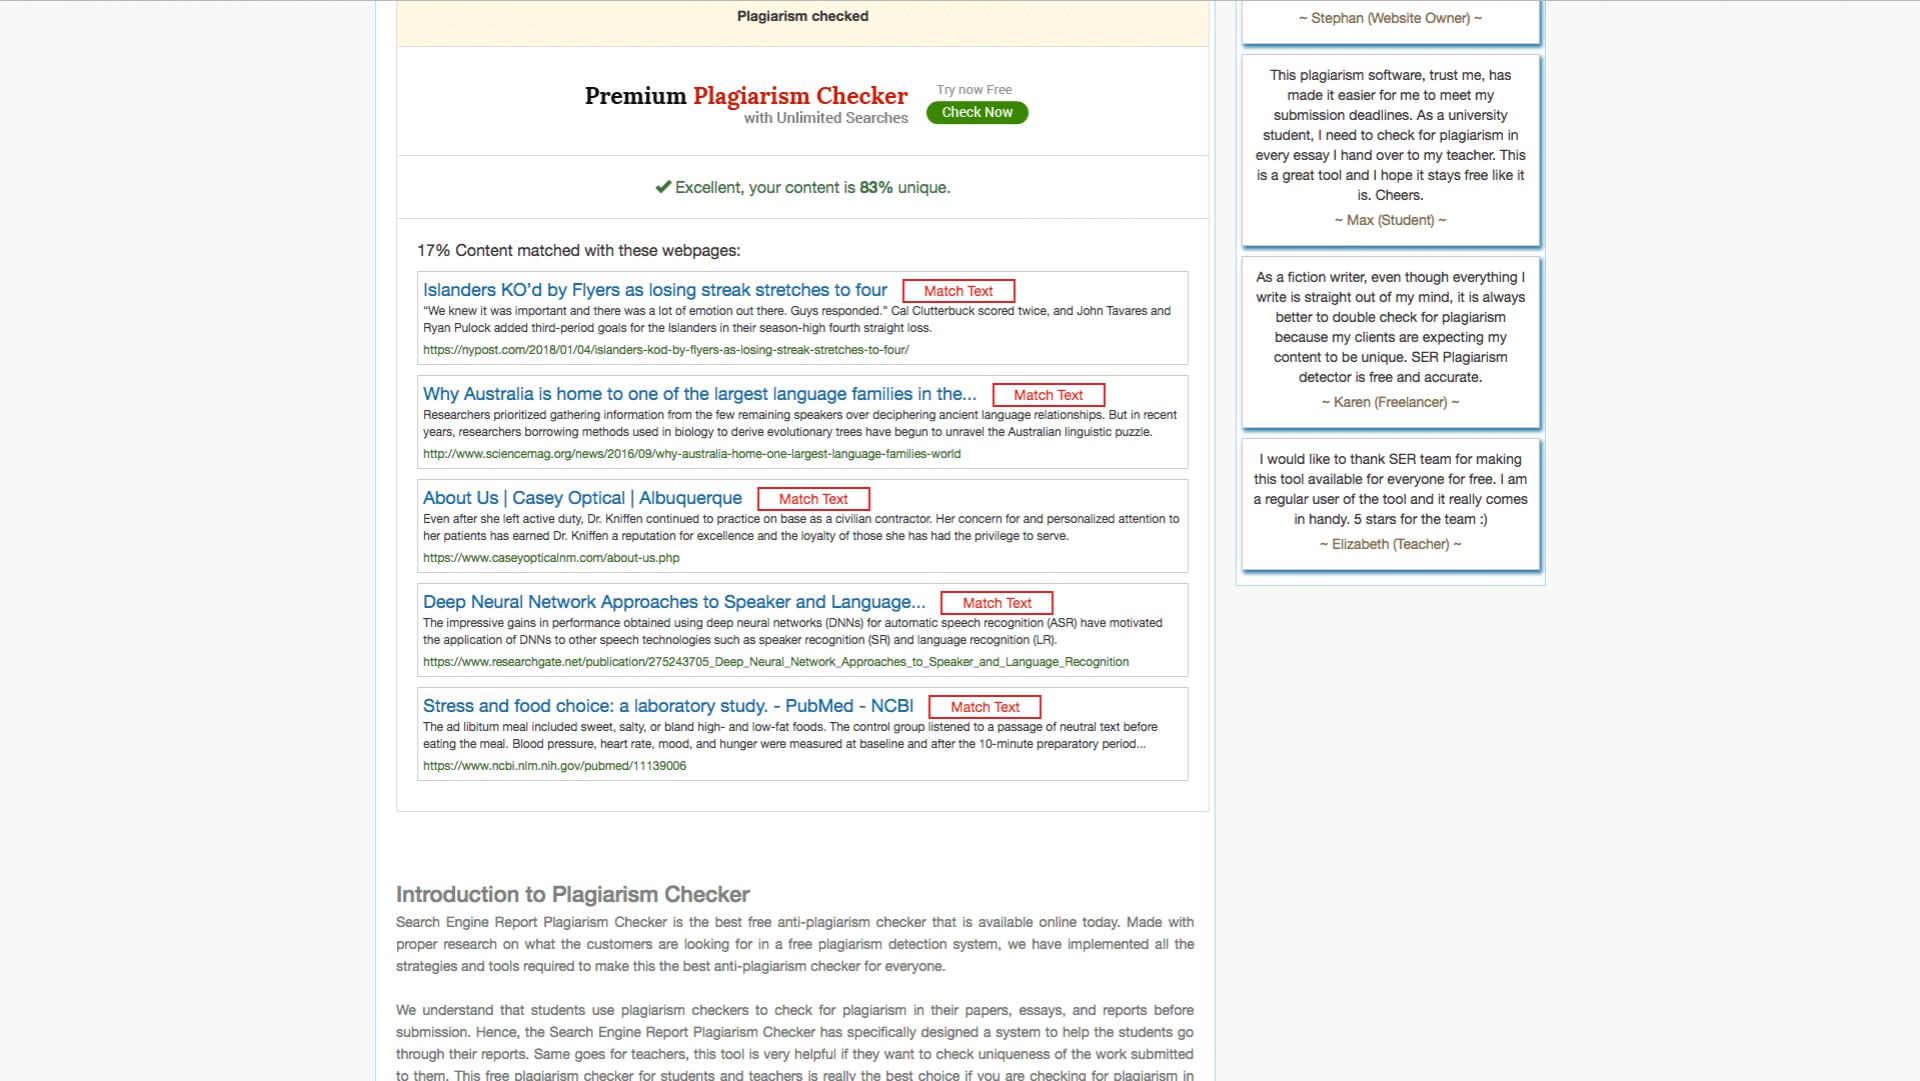 002 Searchenginereports Free Research Paper Plagiarism Unusual Checker 1920